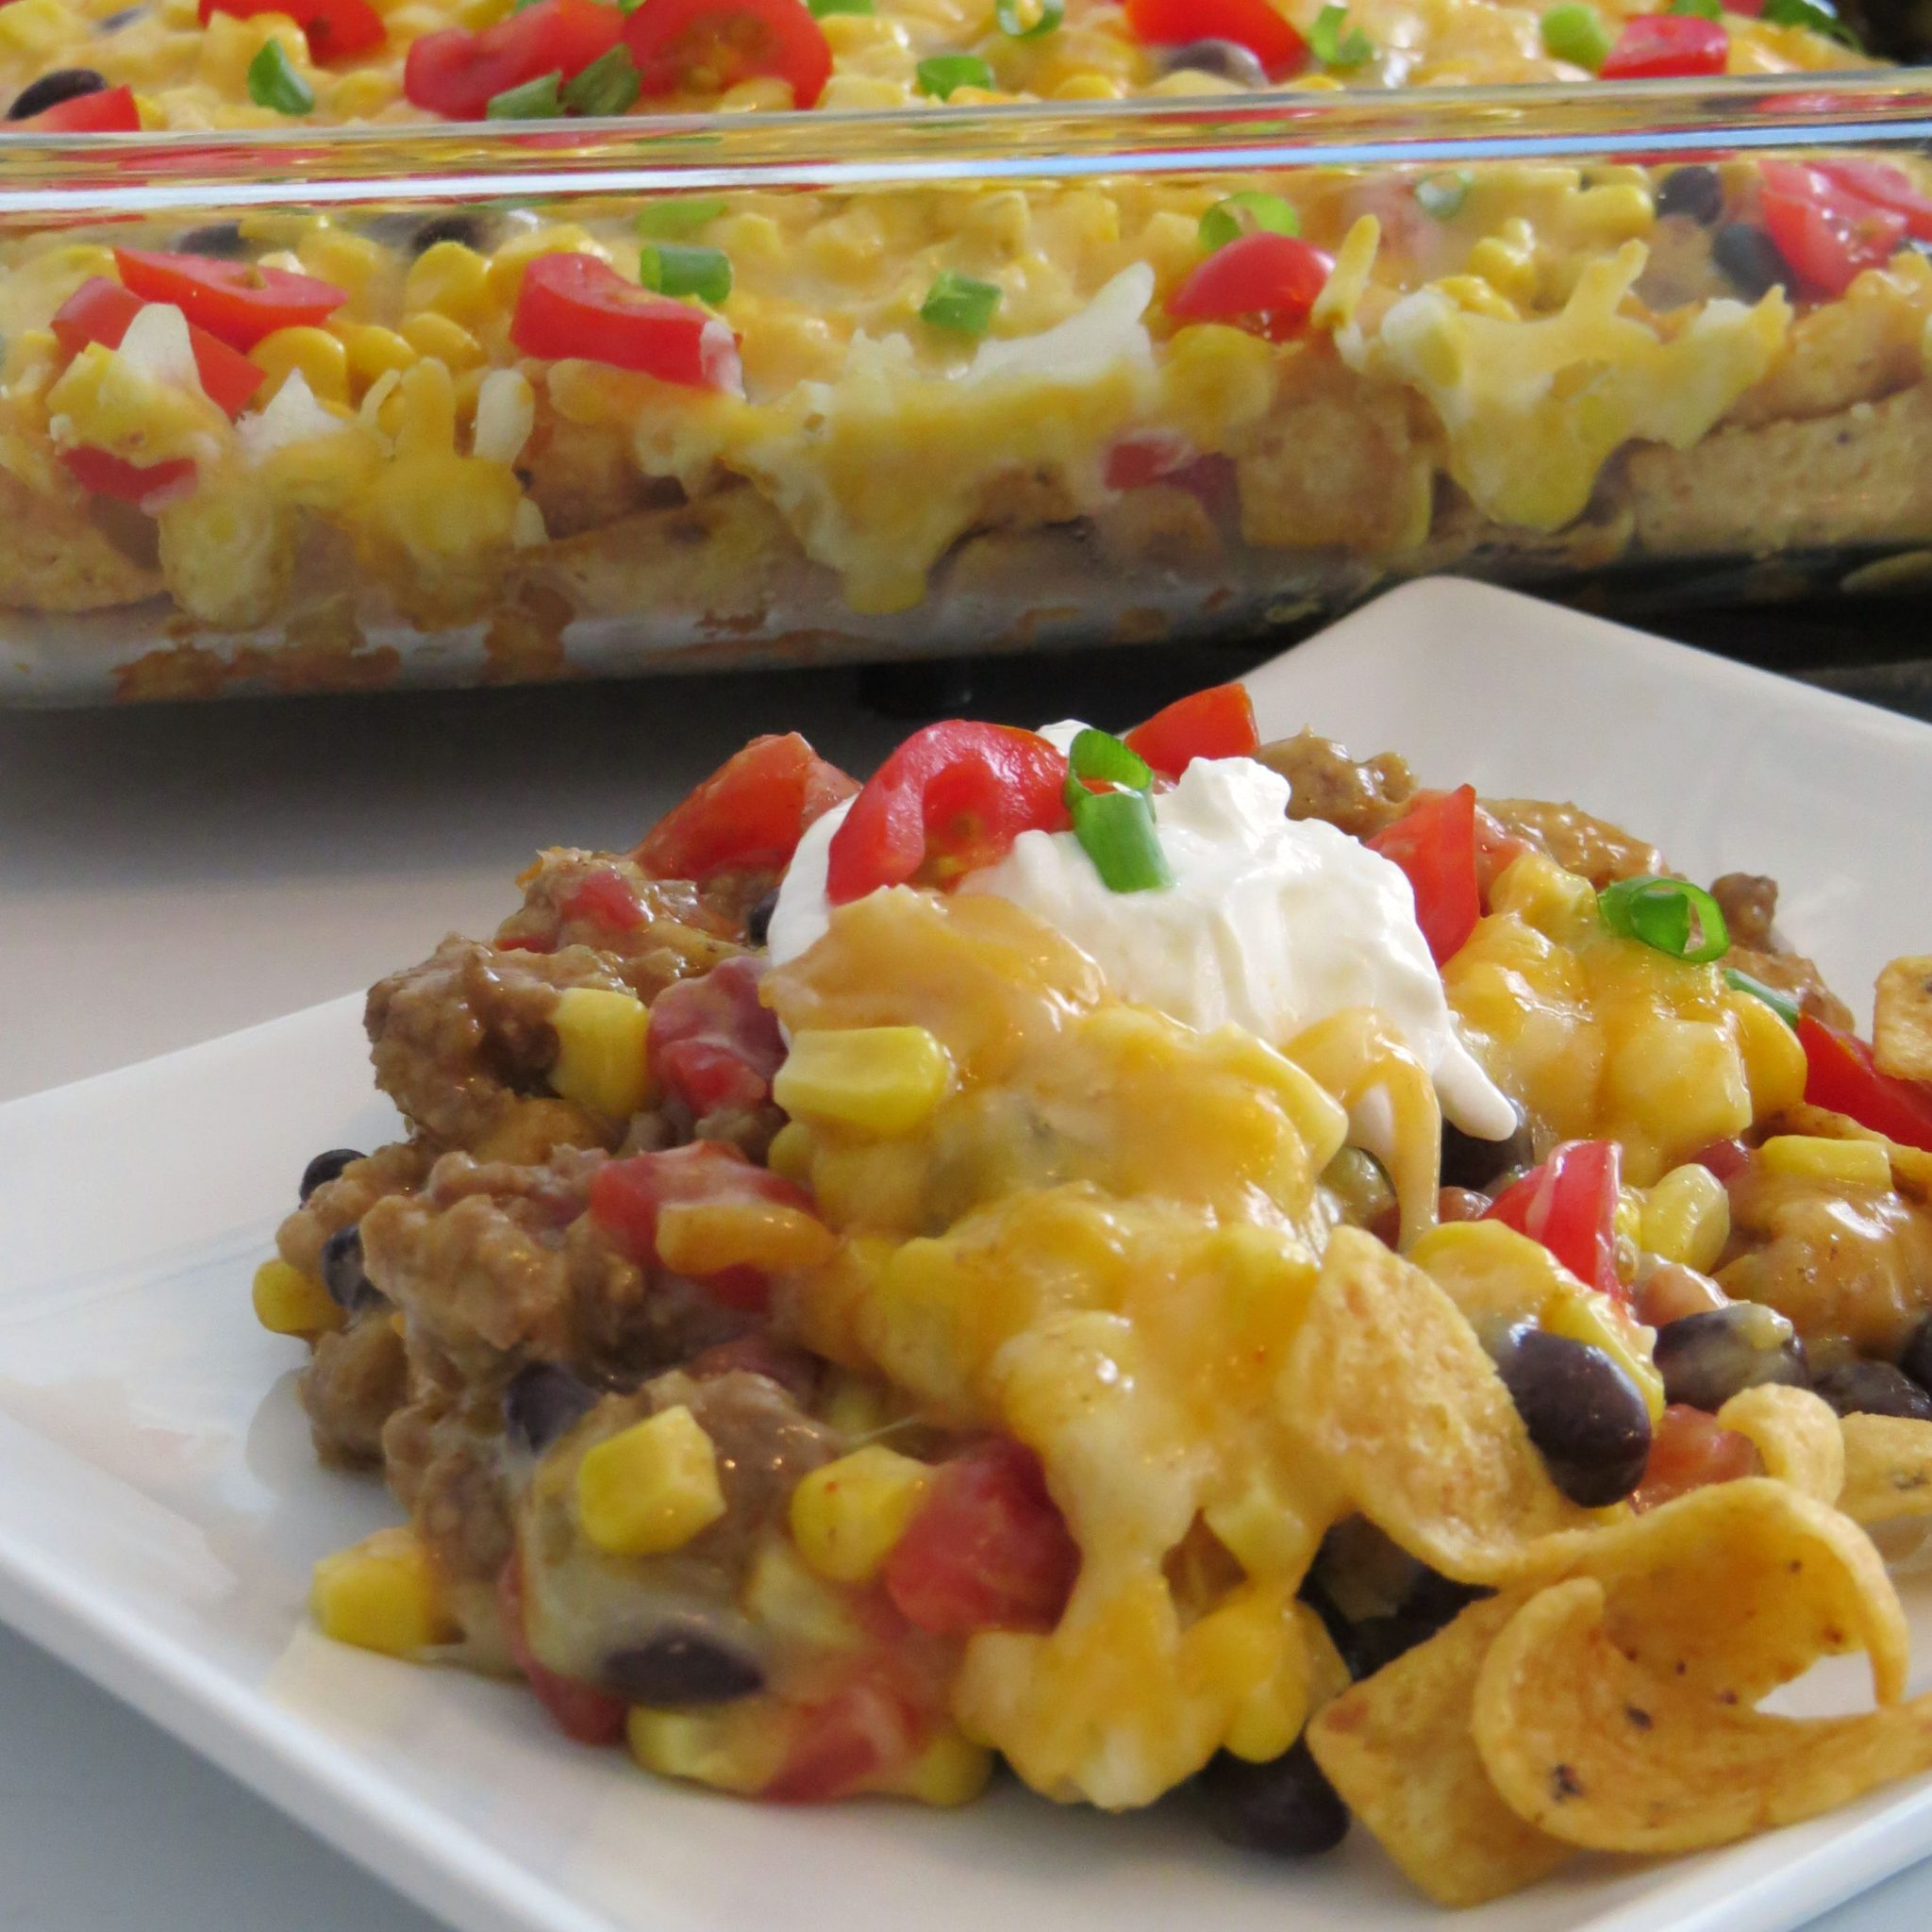 Try This Tex Mex Casserole That's Easy & Delicious